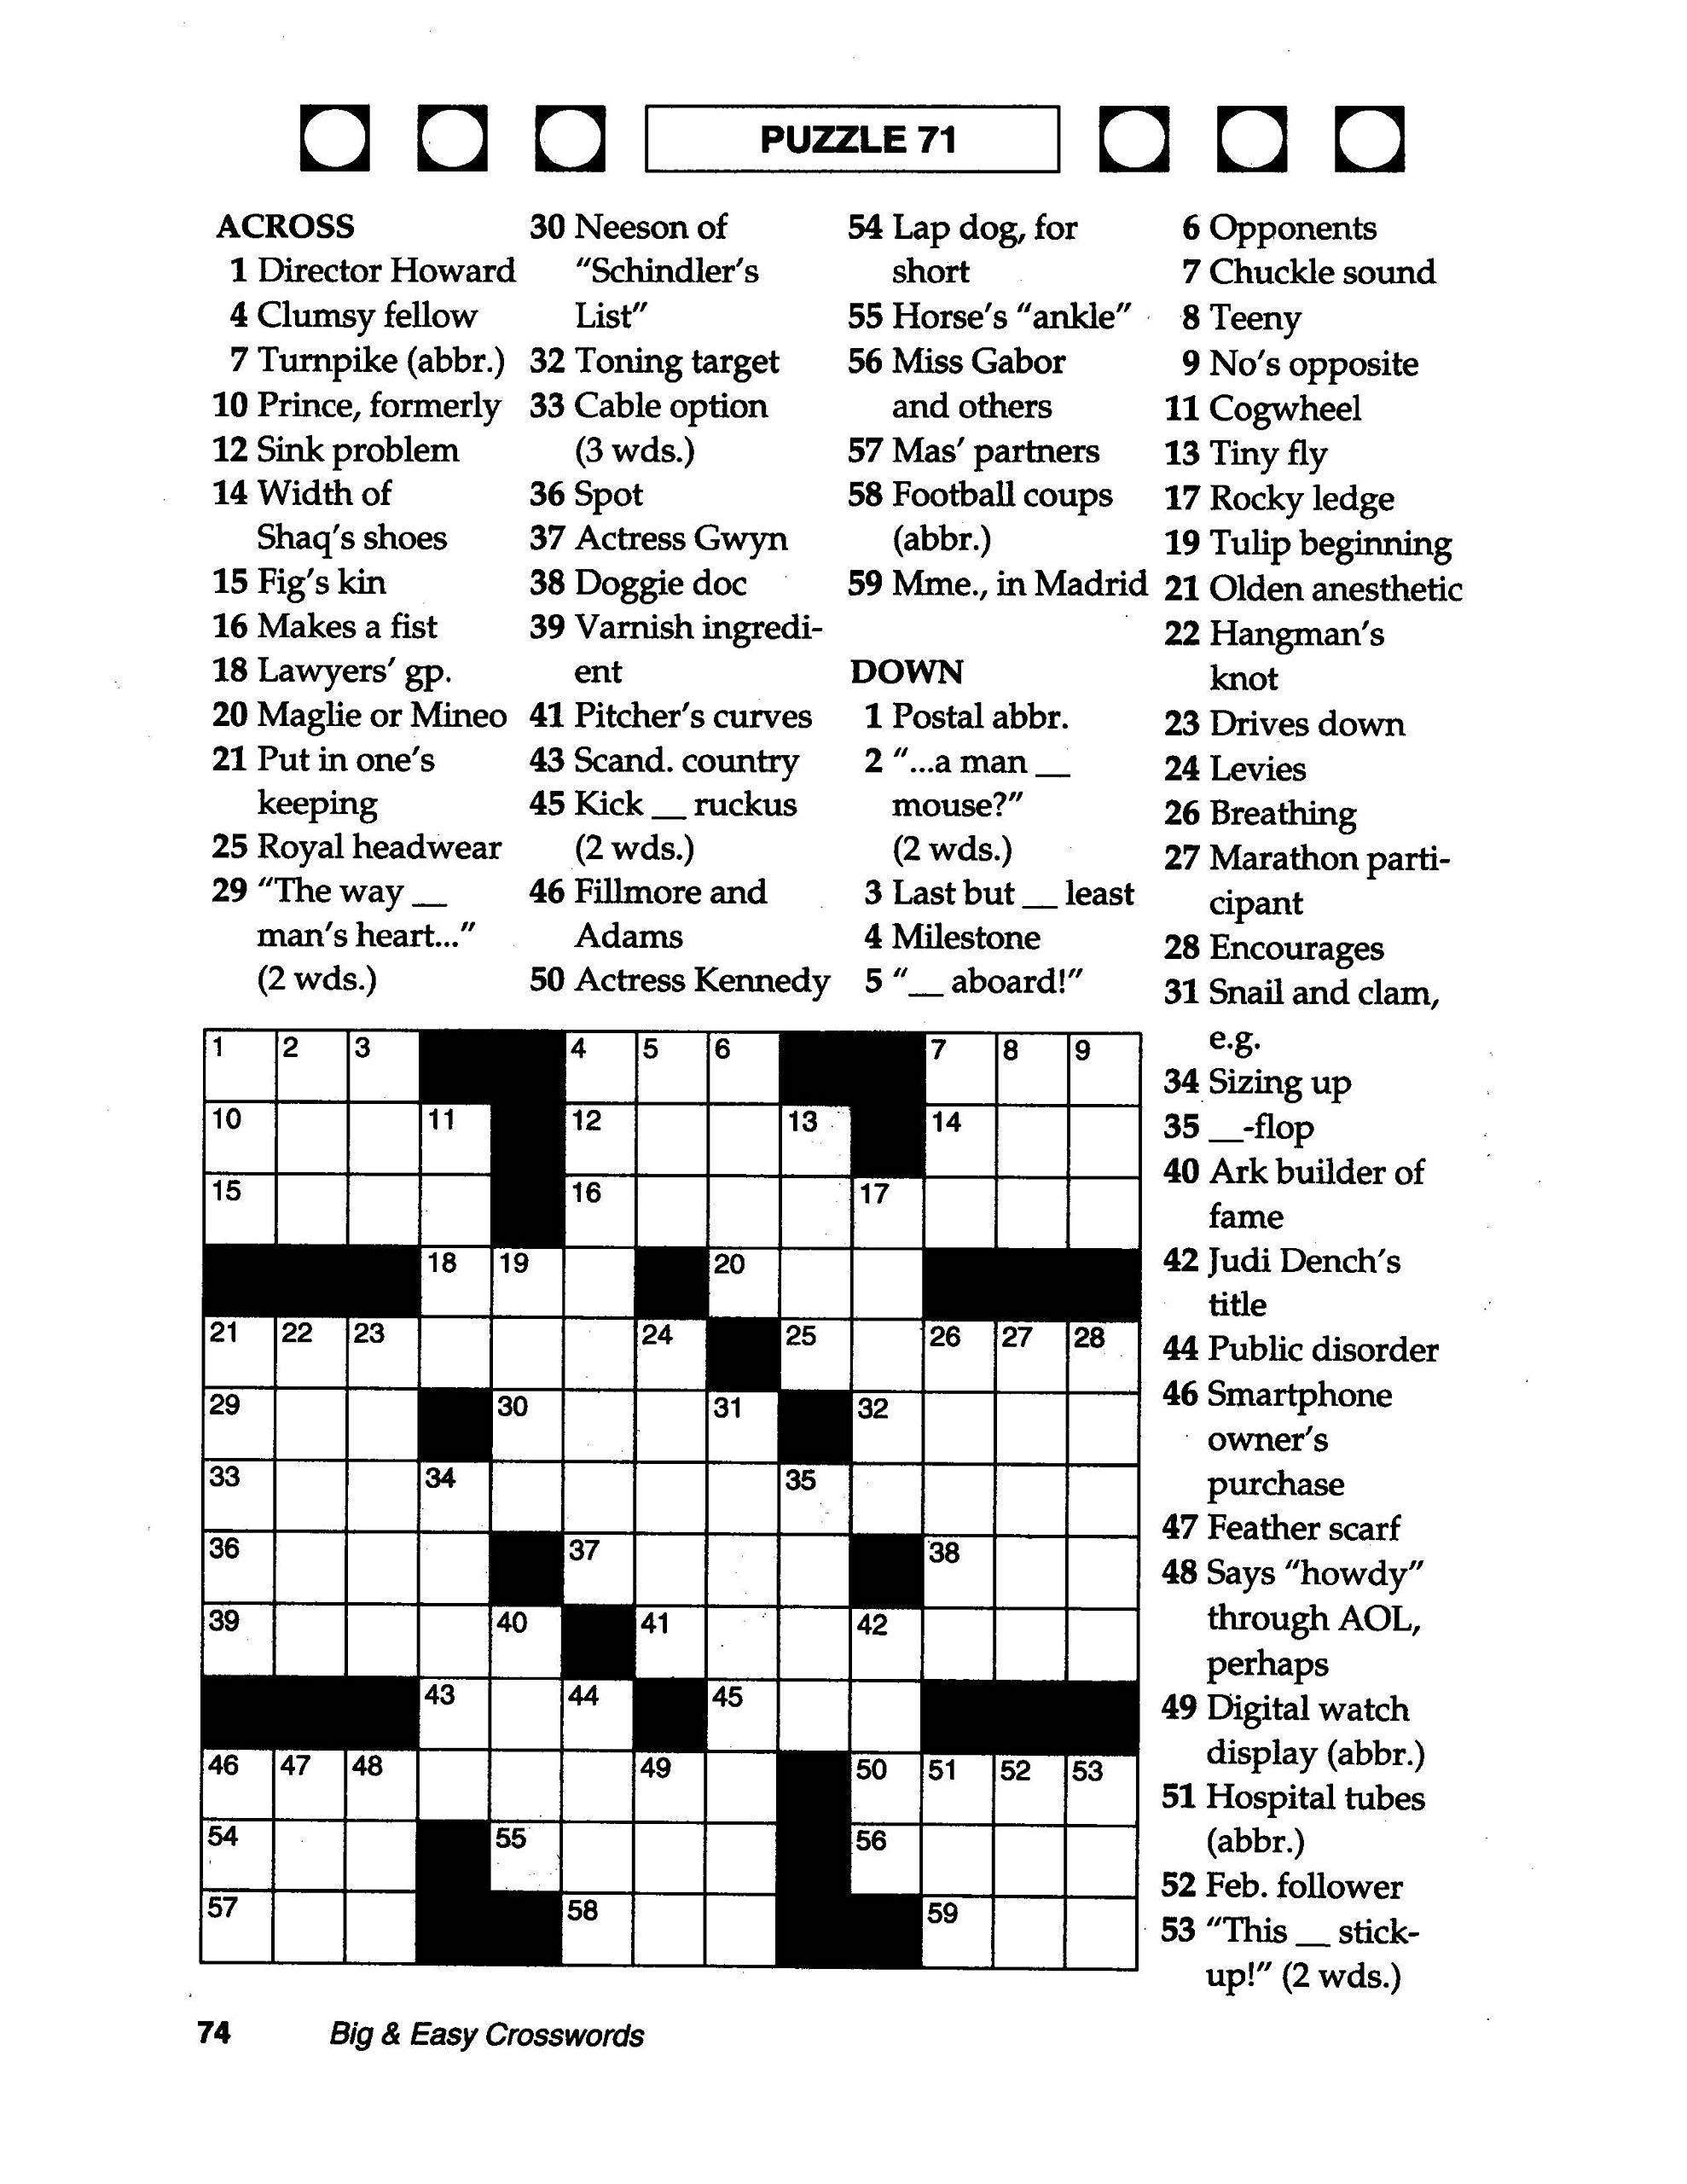 photograph relating to Thomas Joseph Crossword Puzzles Printable Free referred to as Coloring ~ Coloring Cost-free Massive Print Crosswords Basic For